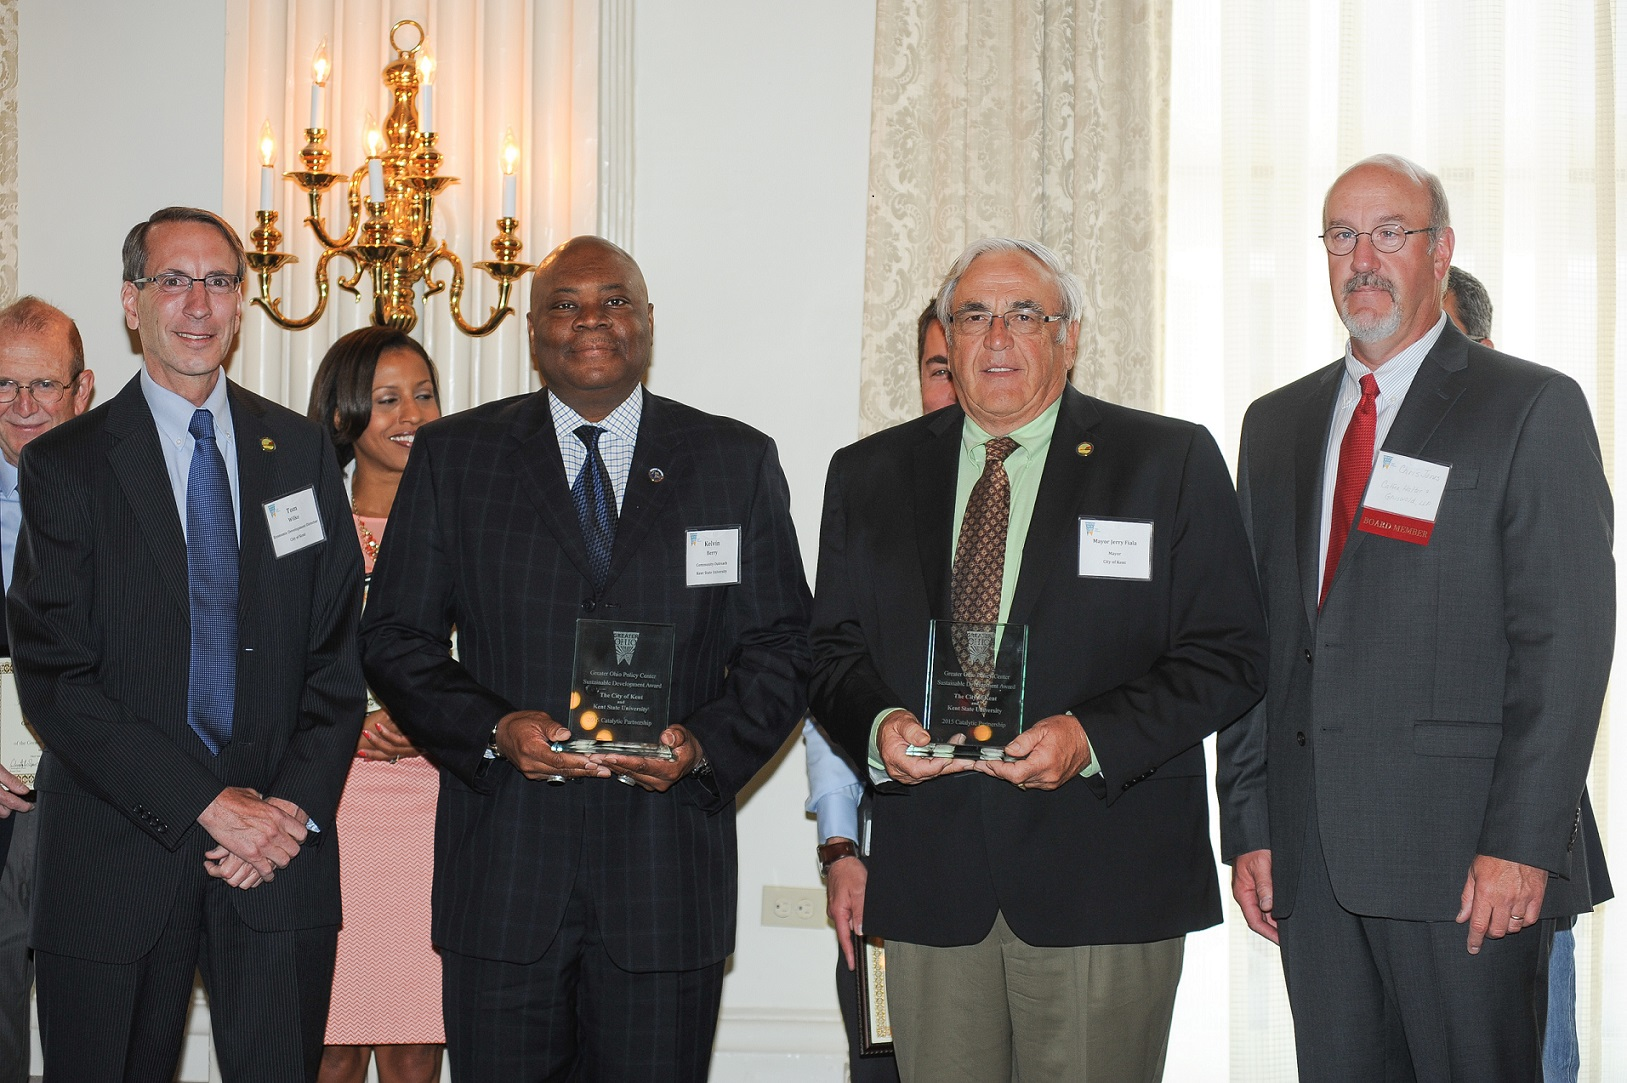 Photo of award presentation to city of Kent and Kent State - photo credit: Ohio Development Services Agency